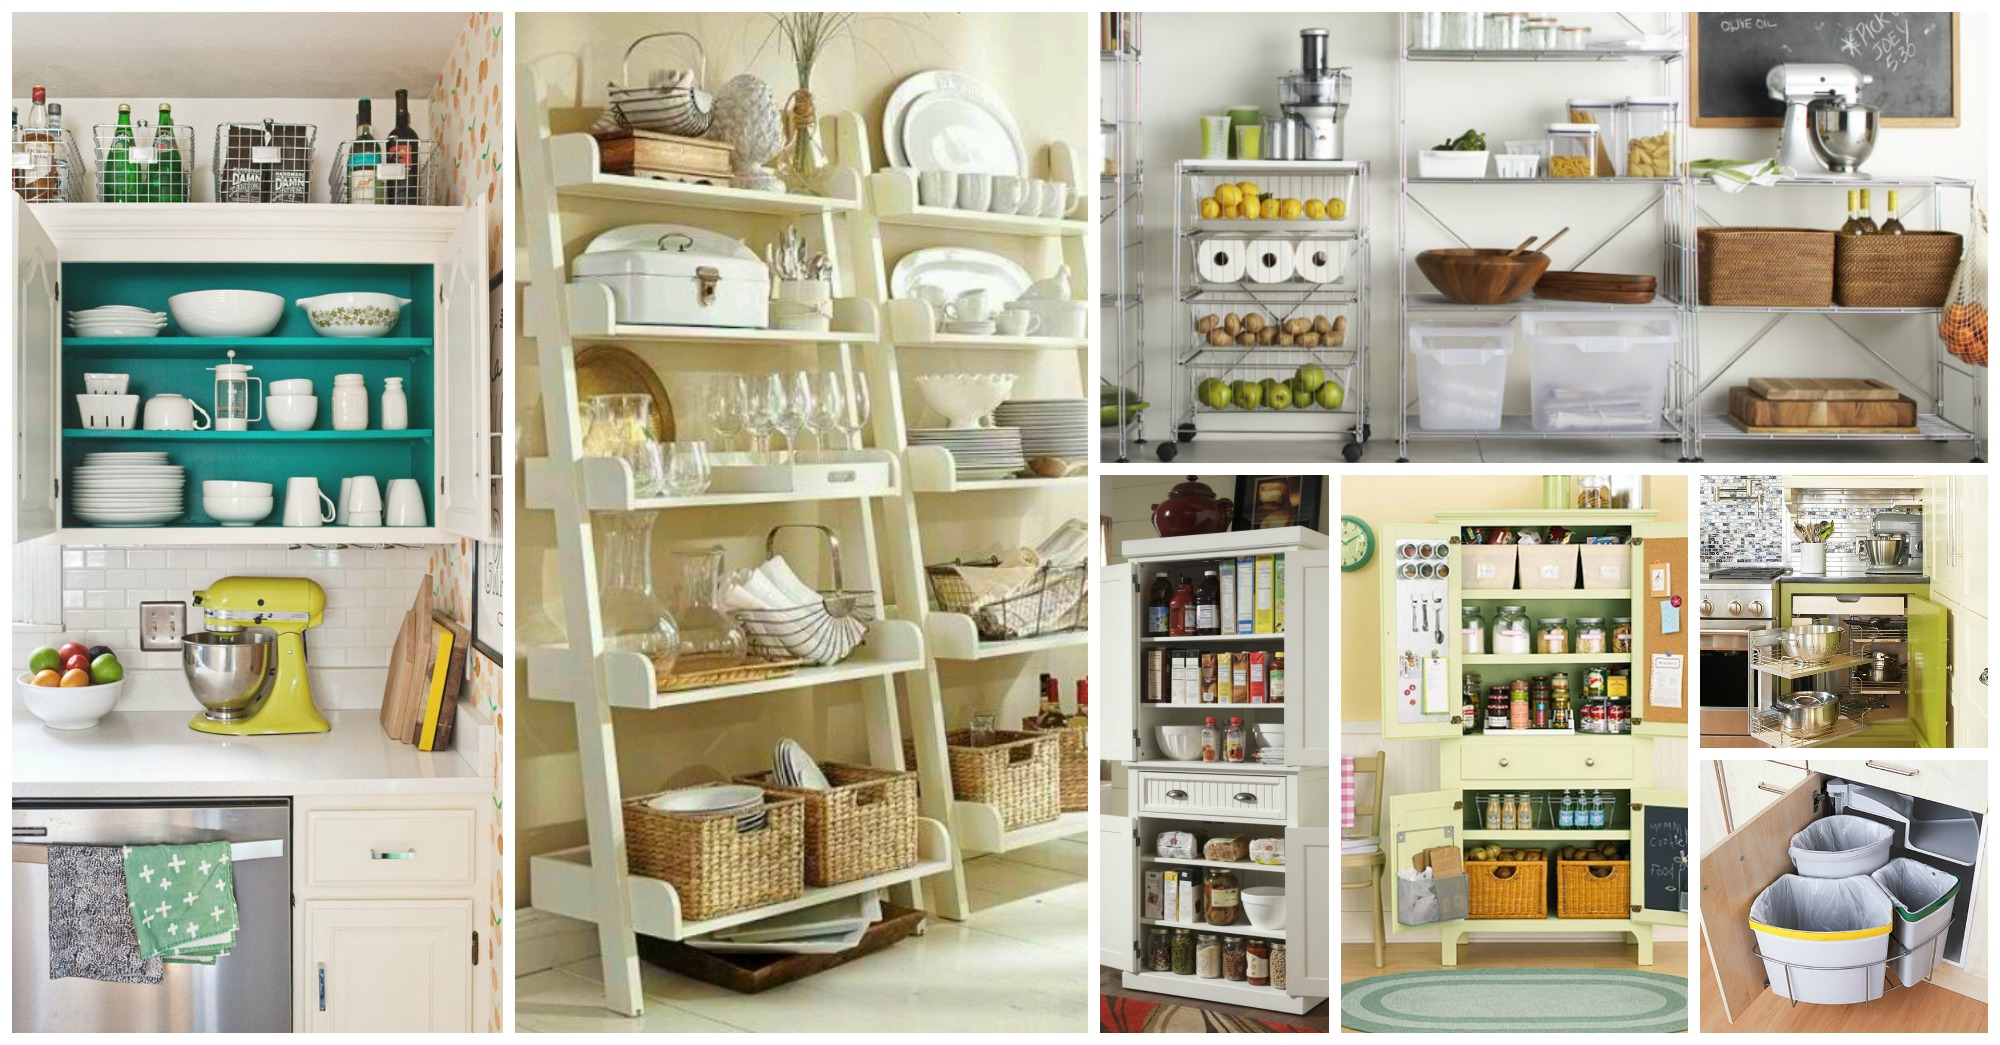 20 Space Saving Kitchen Ideas That Will Blow Your Mind